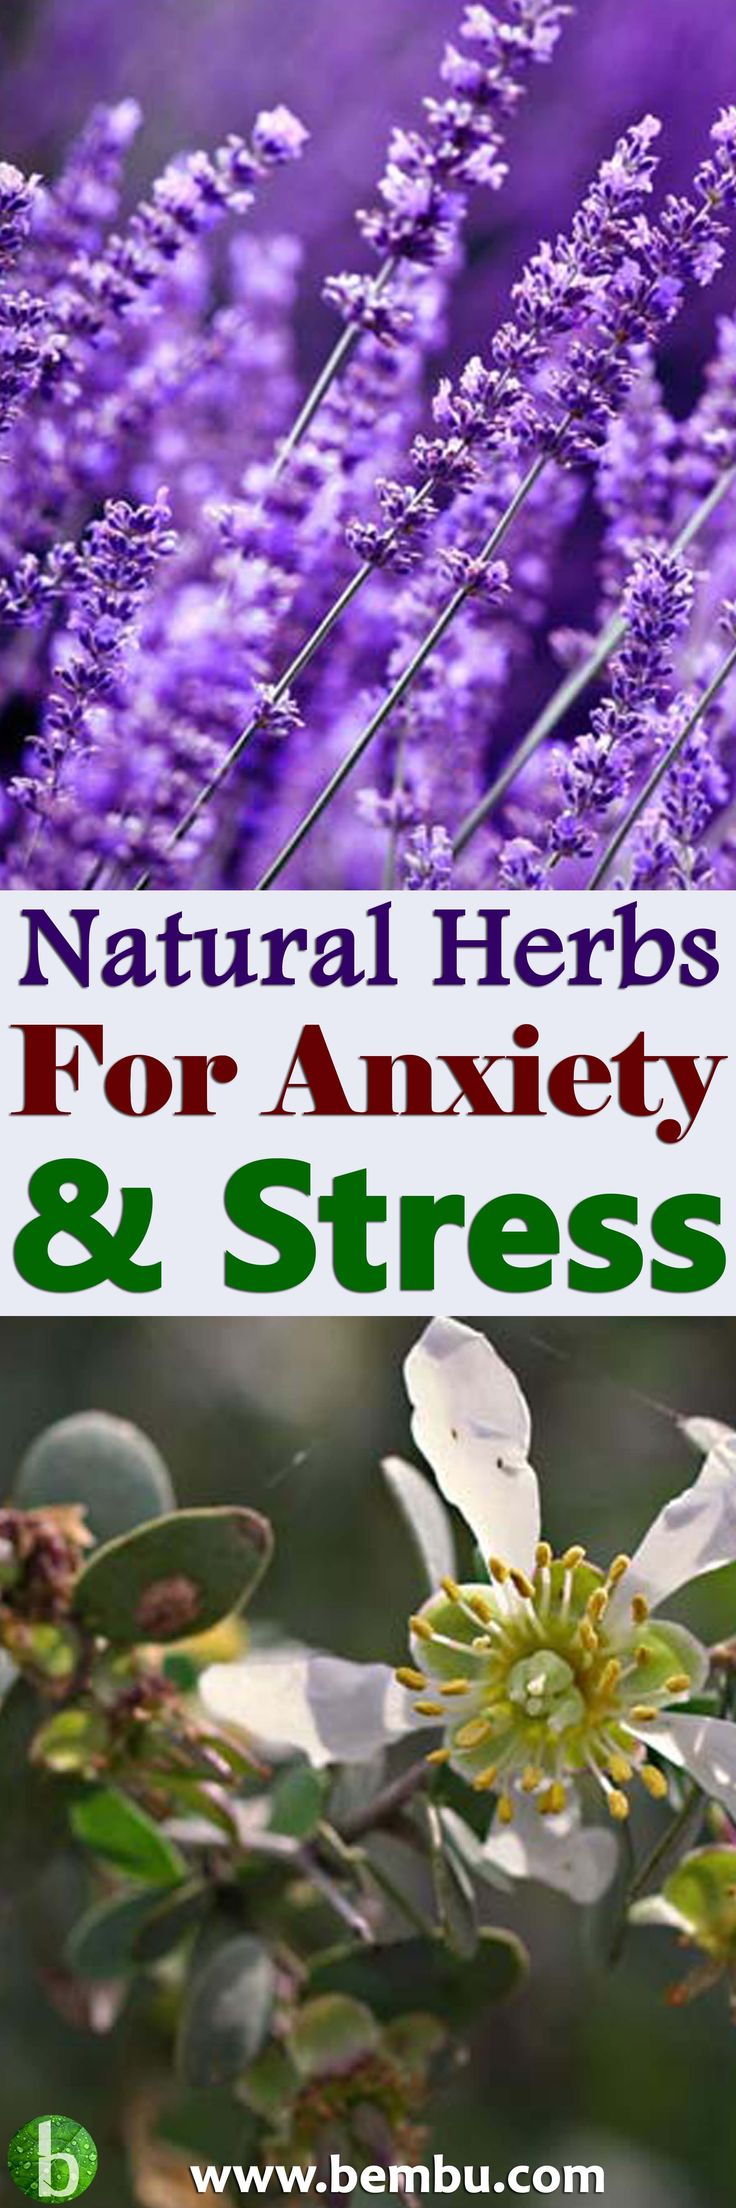 Using natural herb for anxiety is a great alternative to treating it with prescription medication... Health Tips │ Health Ideas │Healthy Food │Health │Food │Vitamin │Healing │Natural Remedies │Nutrition │Natural Cure │Herbal Remedies │Natural beauty #Health #Ideas #Tips #Vitamin #Healthyfood #Food #Vitamin #Healing #Remedies #Nutrition #Cure #Herbalremedies #Naturalbeauty